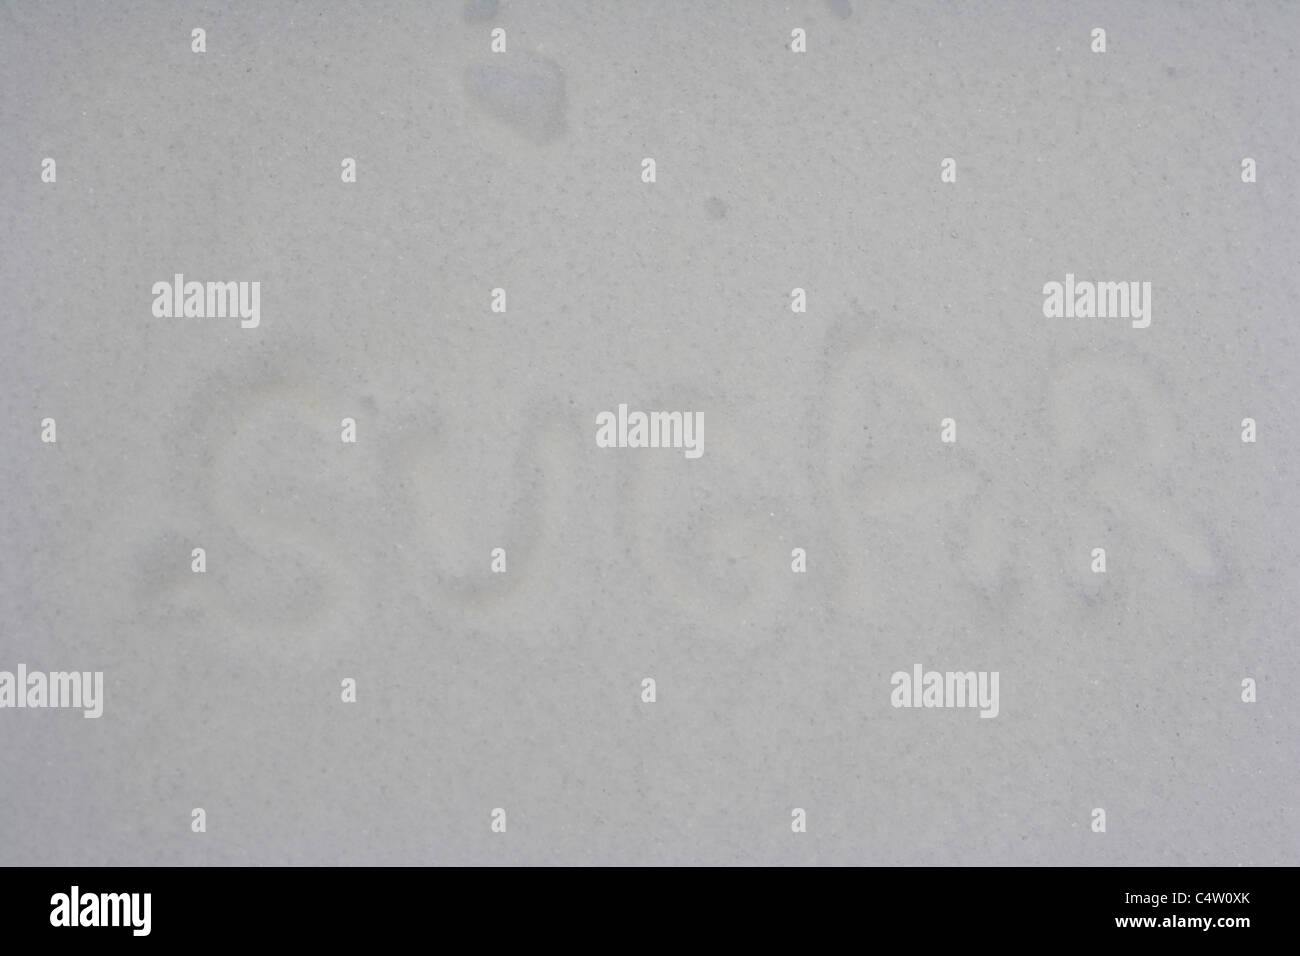 Word sugar written on castor sugar - Stock Image